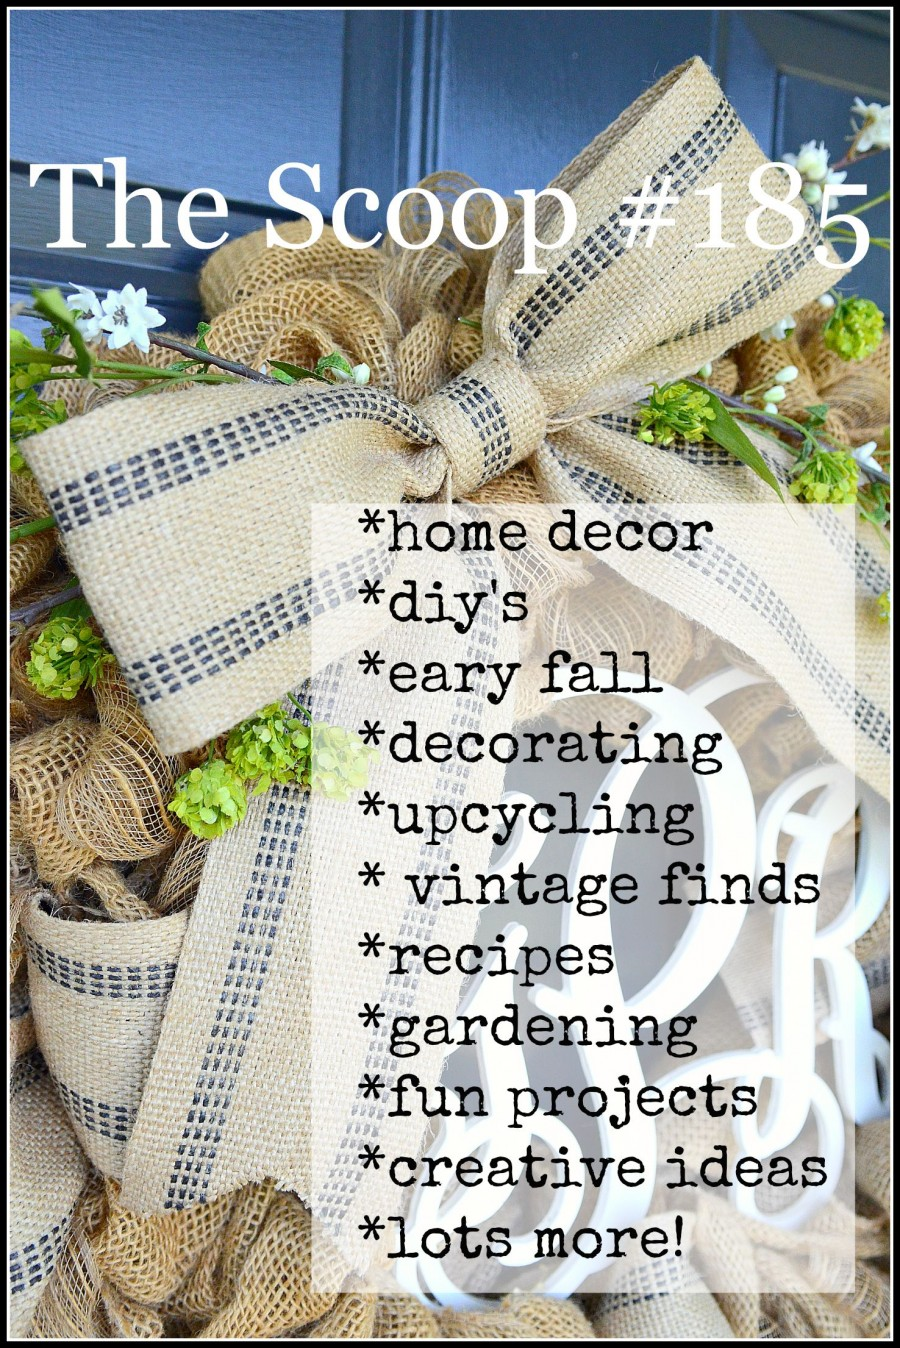 THE SCOOP- Hundreds of creative home and garden ideas. Lots of inspiration-stonegableblog.com